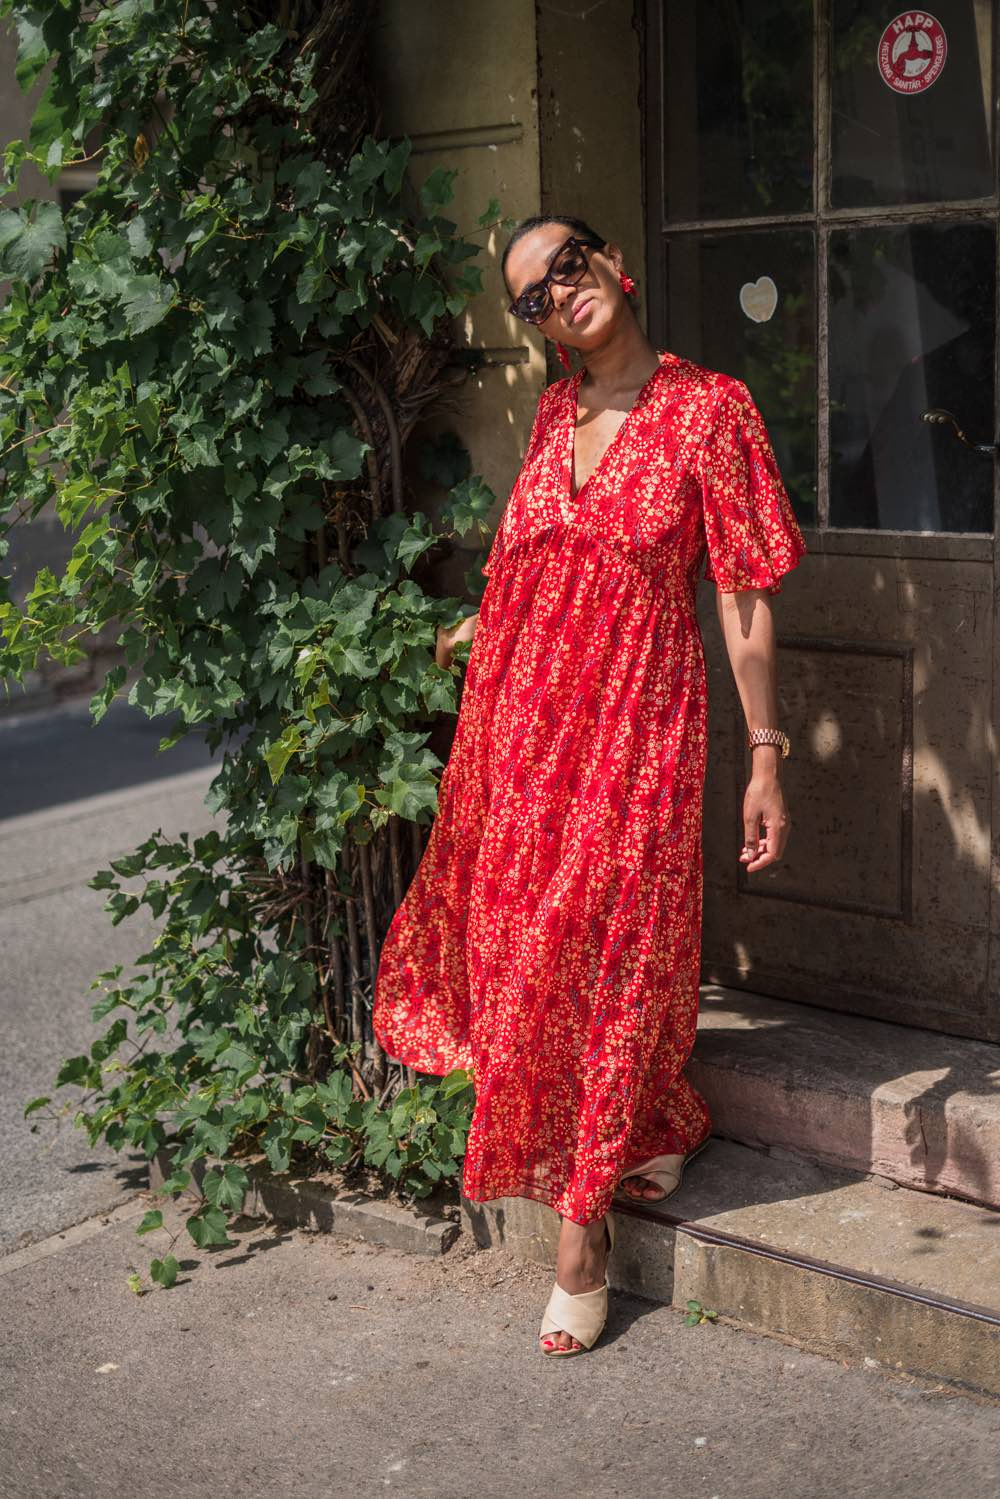 German fashion blogger wearing a maxi dress in fall